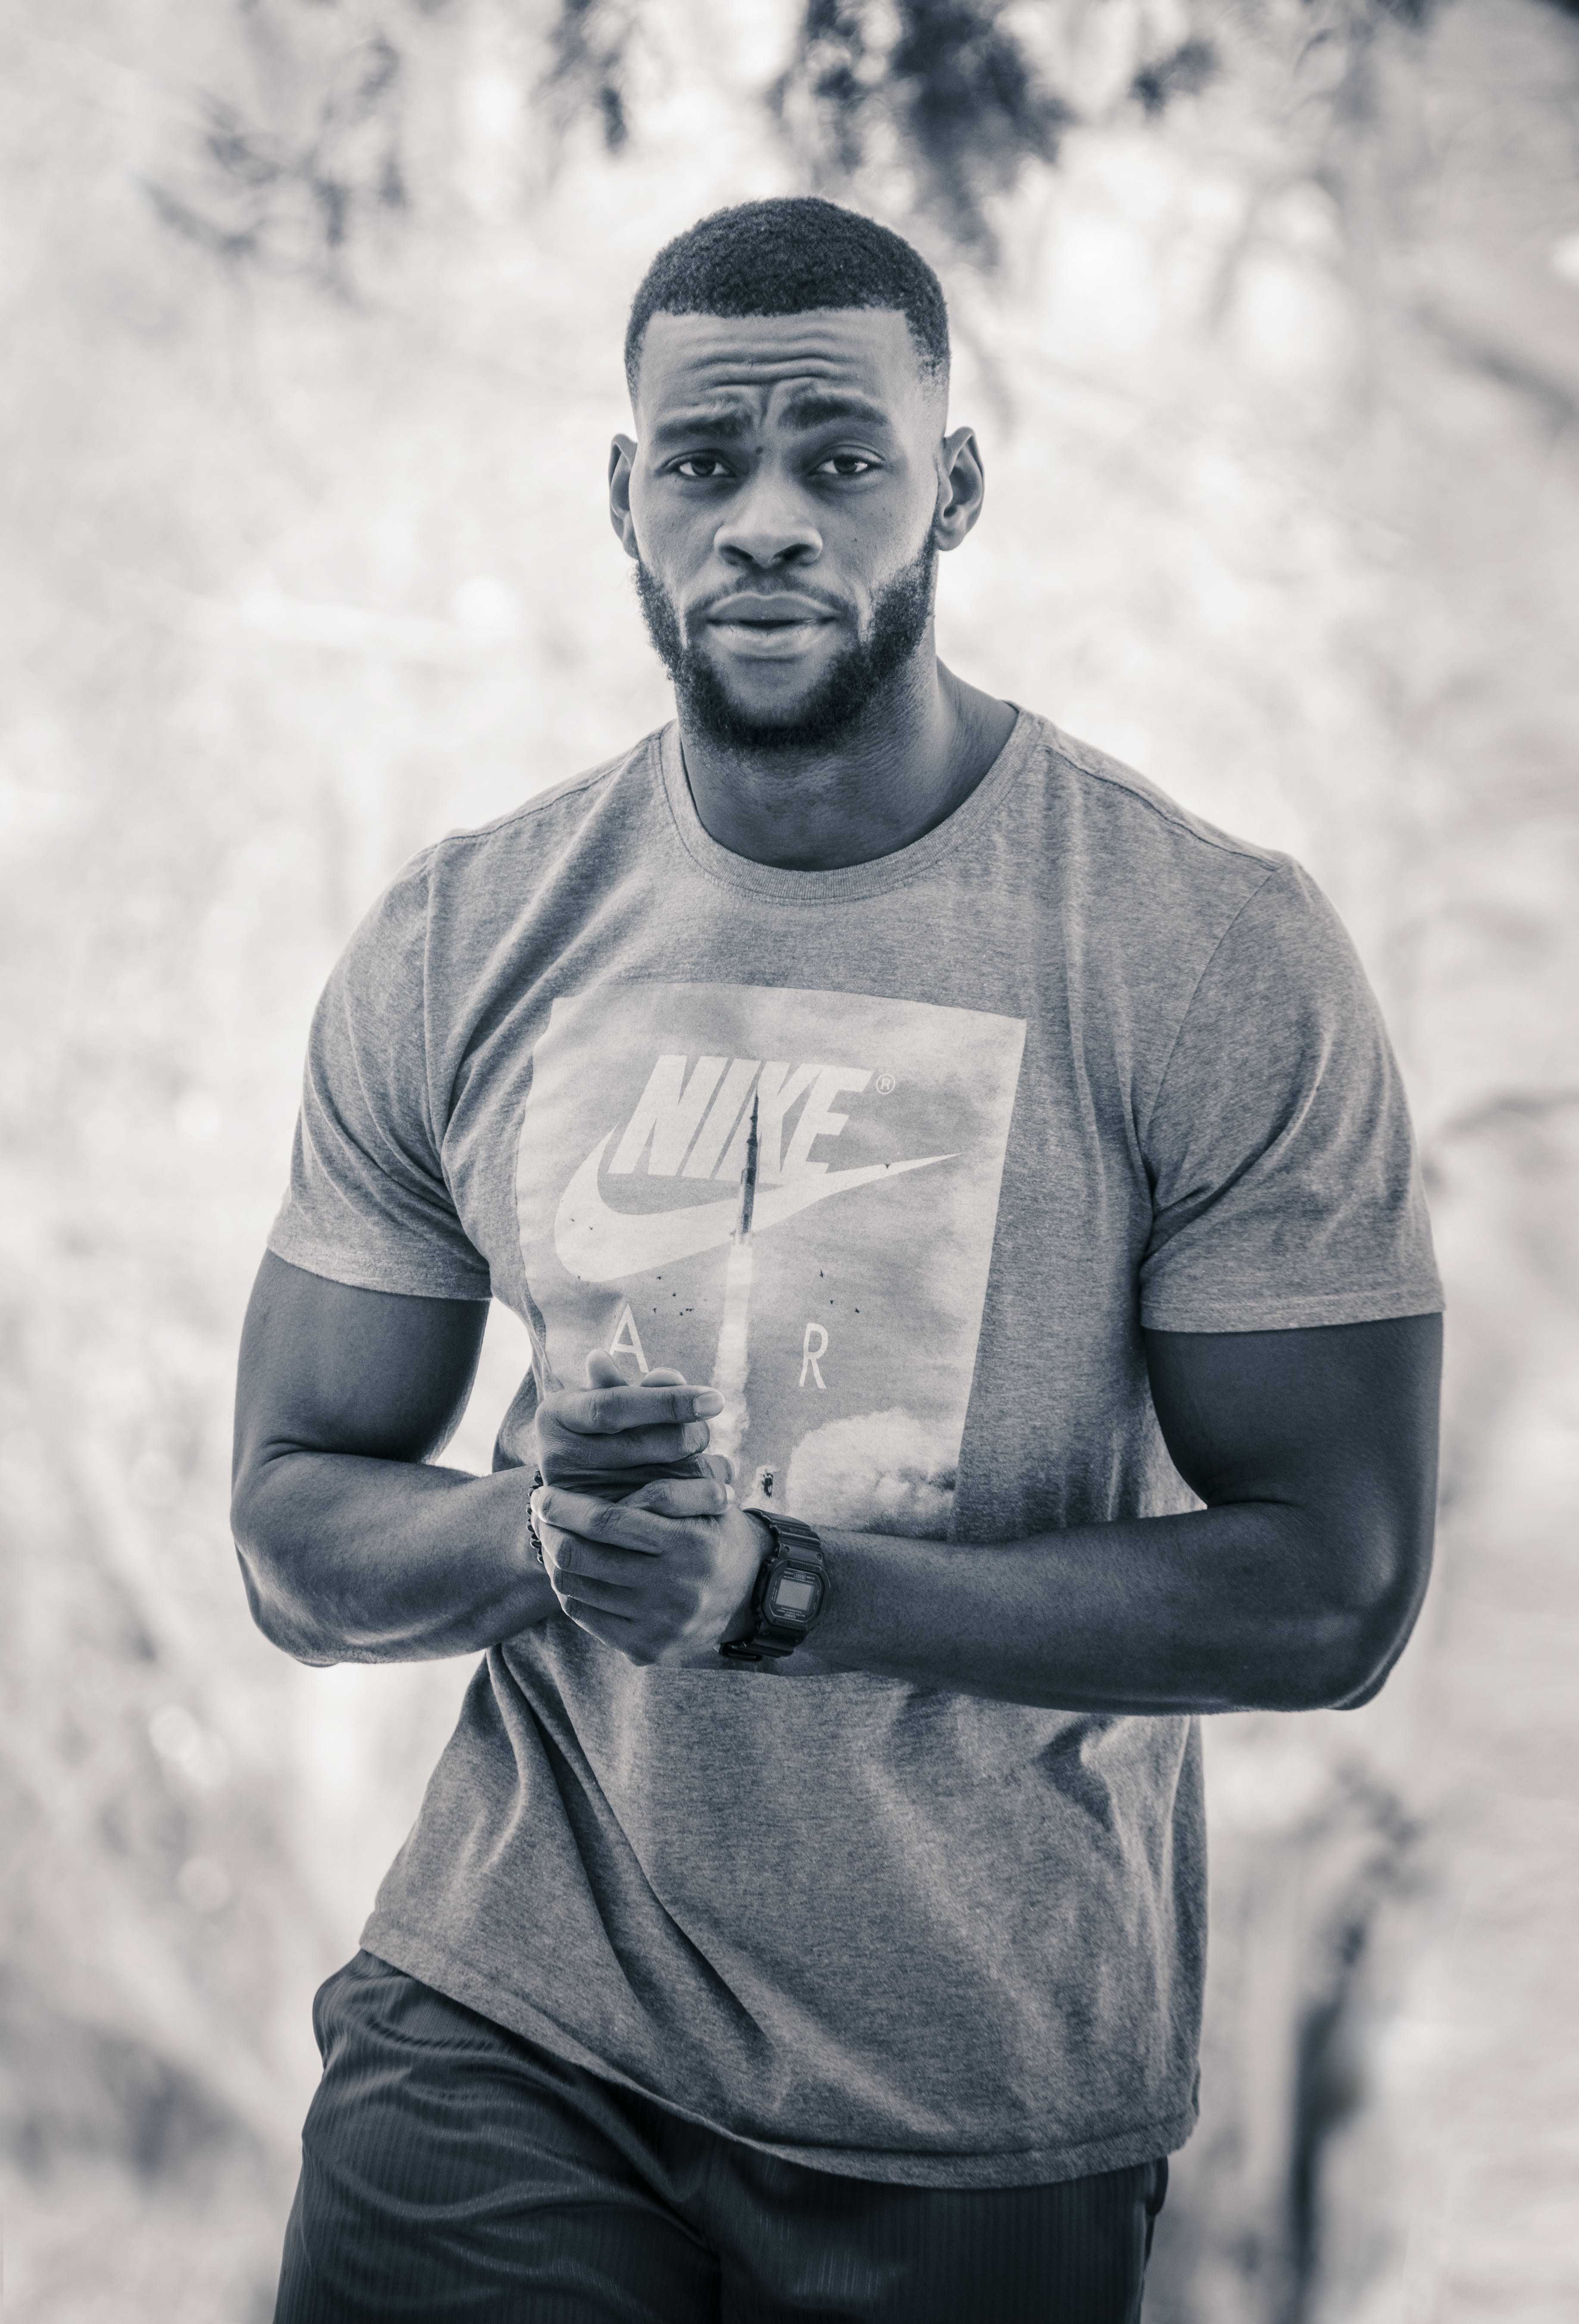 Grayscale Photo Of Man In Nike Crew Neck T-shirt